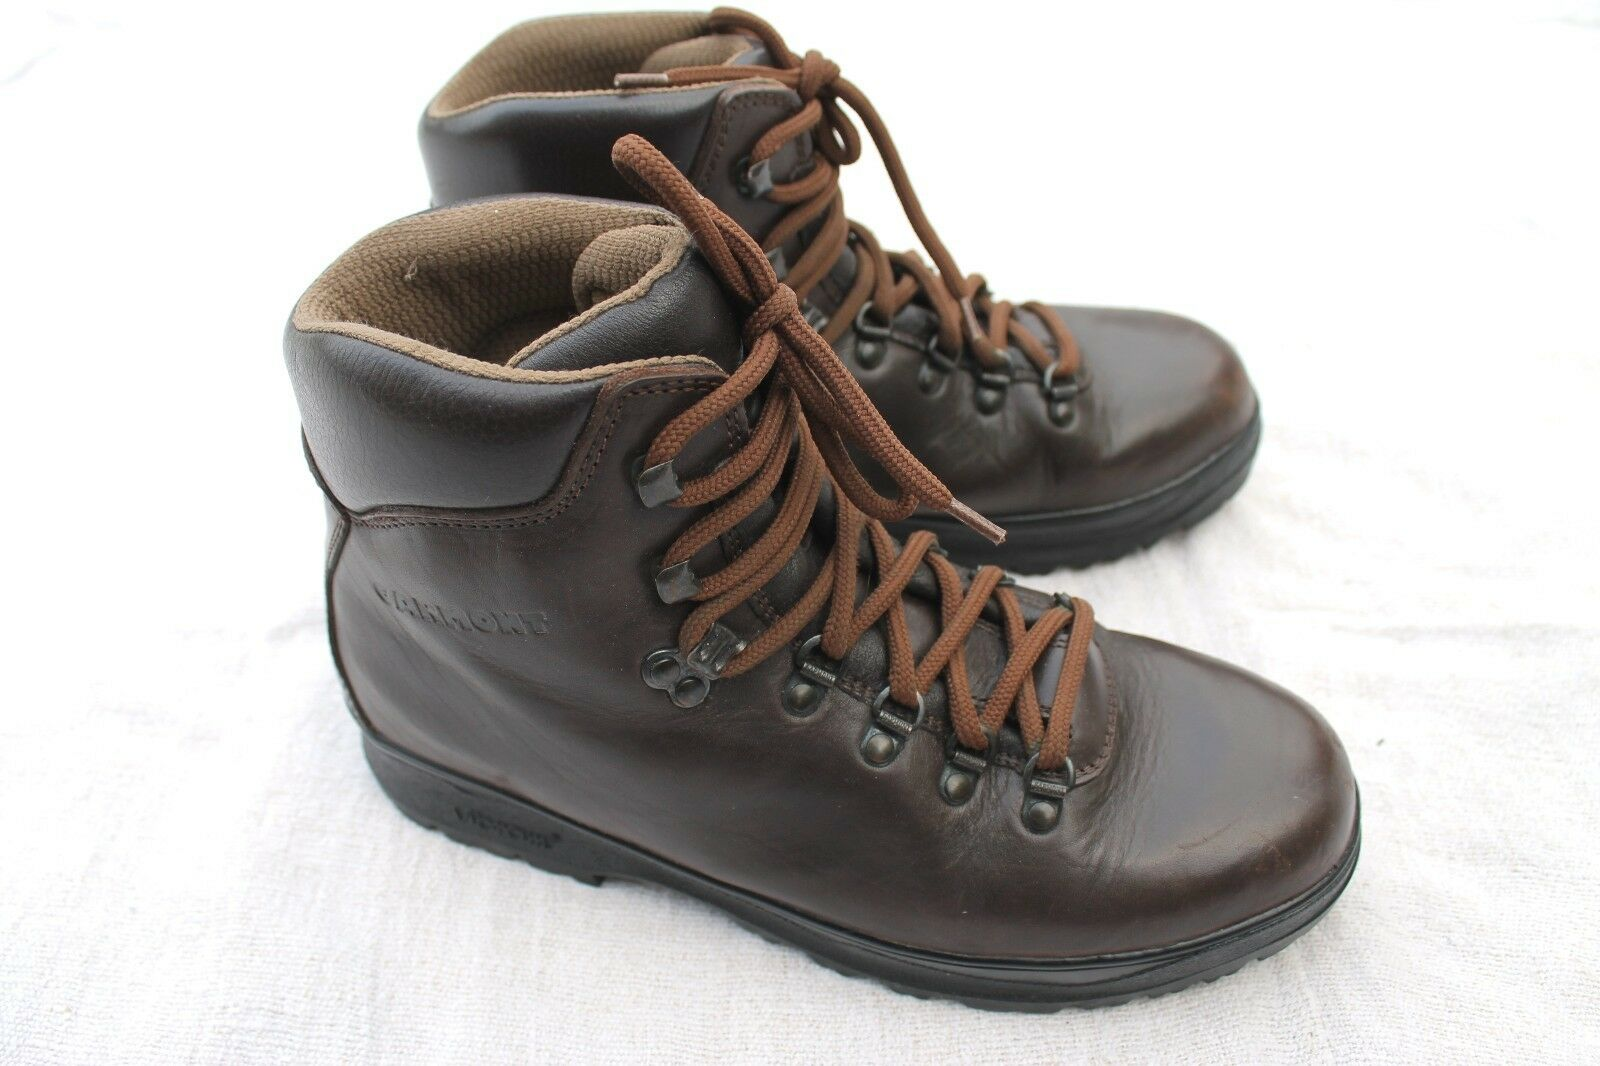 GARMONT Hiking Stiefel Made in  Vibram US 9 1 4 UK 8 3 4 EU 43 Vintage